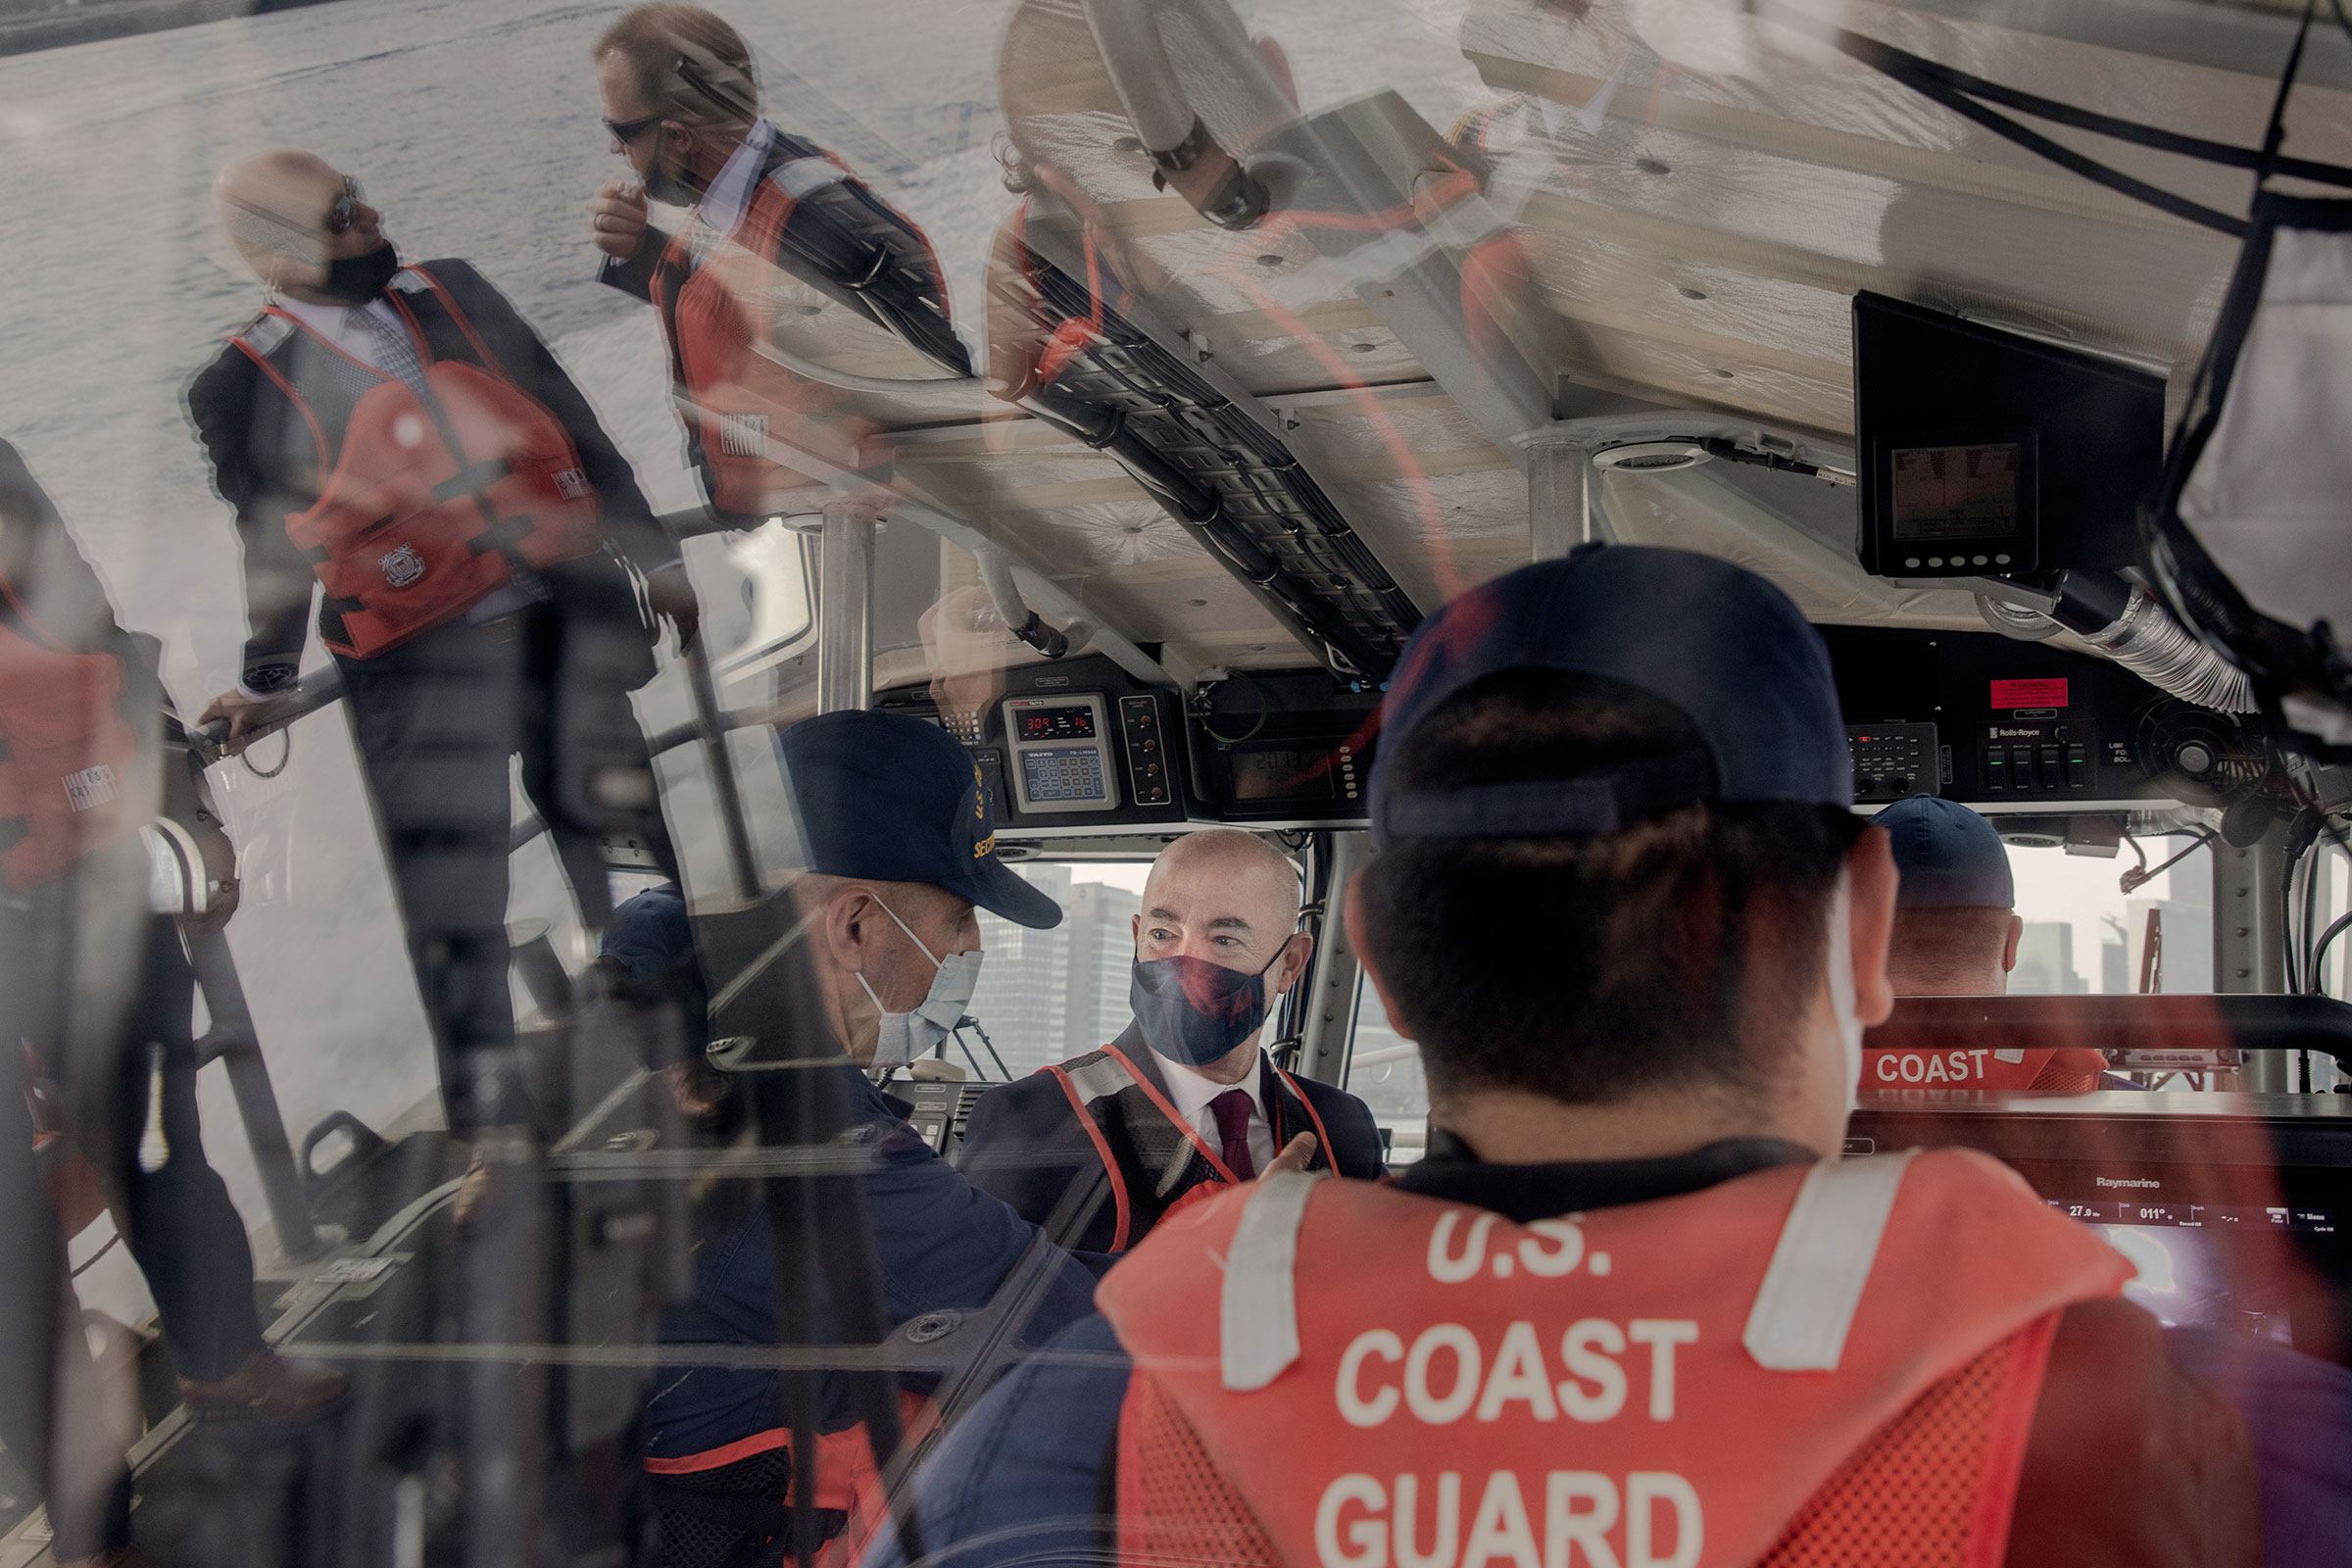 Mayorkas is escorted from the Brooklyn Navy Yard to La Guardia Airport by the Coast Guard during his trip to New York City on April 28, 2021.